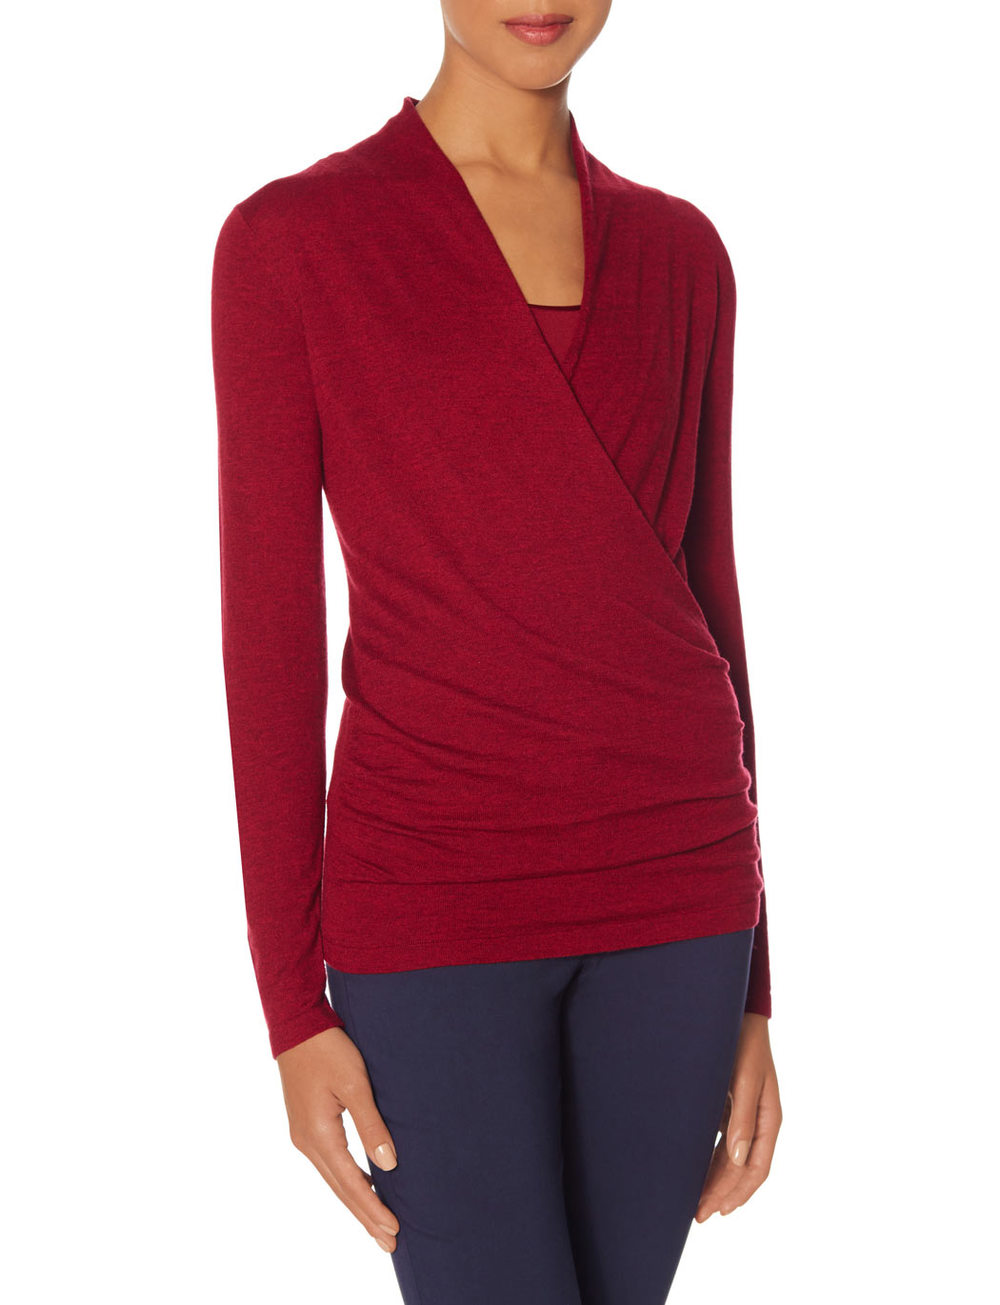 Tall Wrap Look Sweater. Available in red, navy, mint green. The Limited. $49.95.